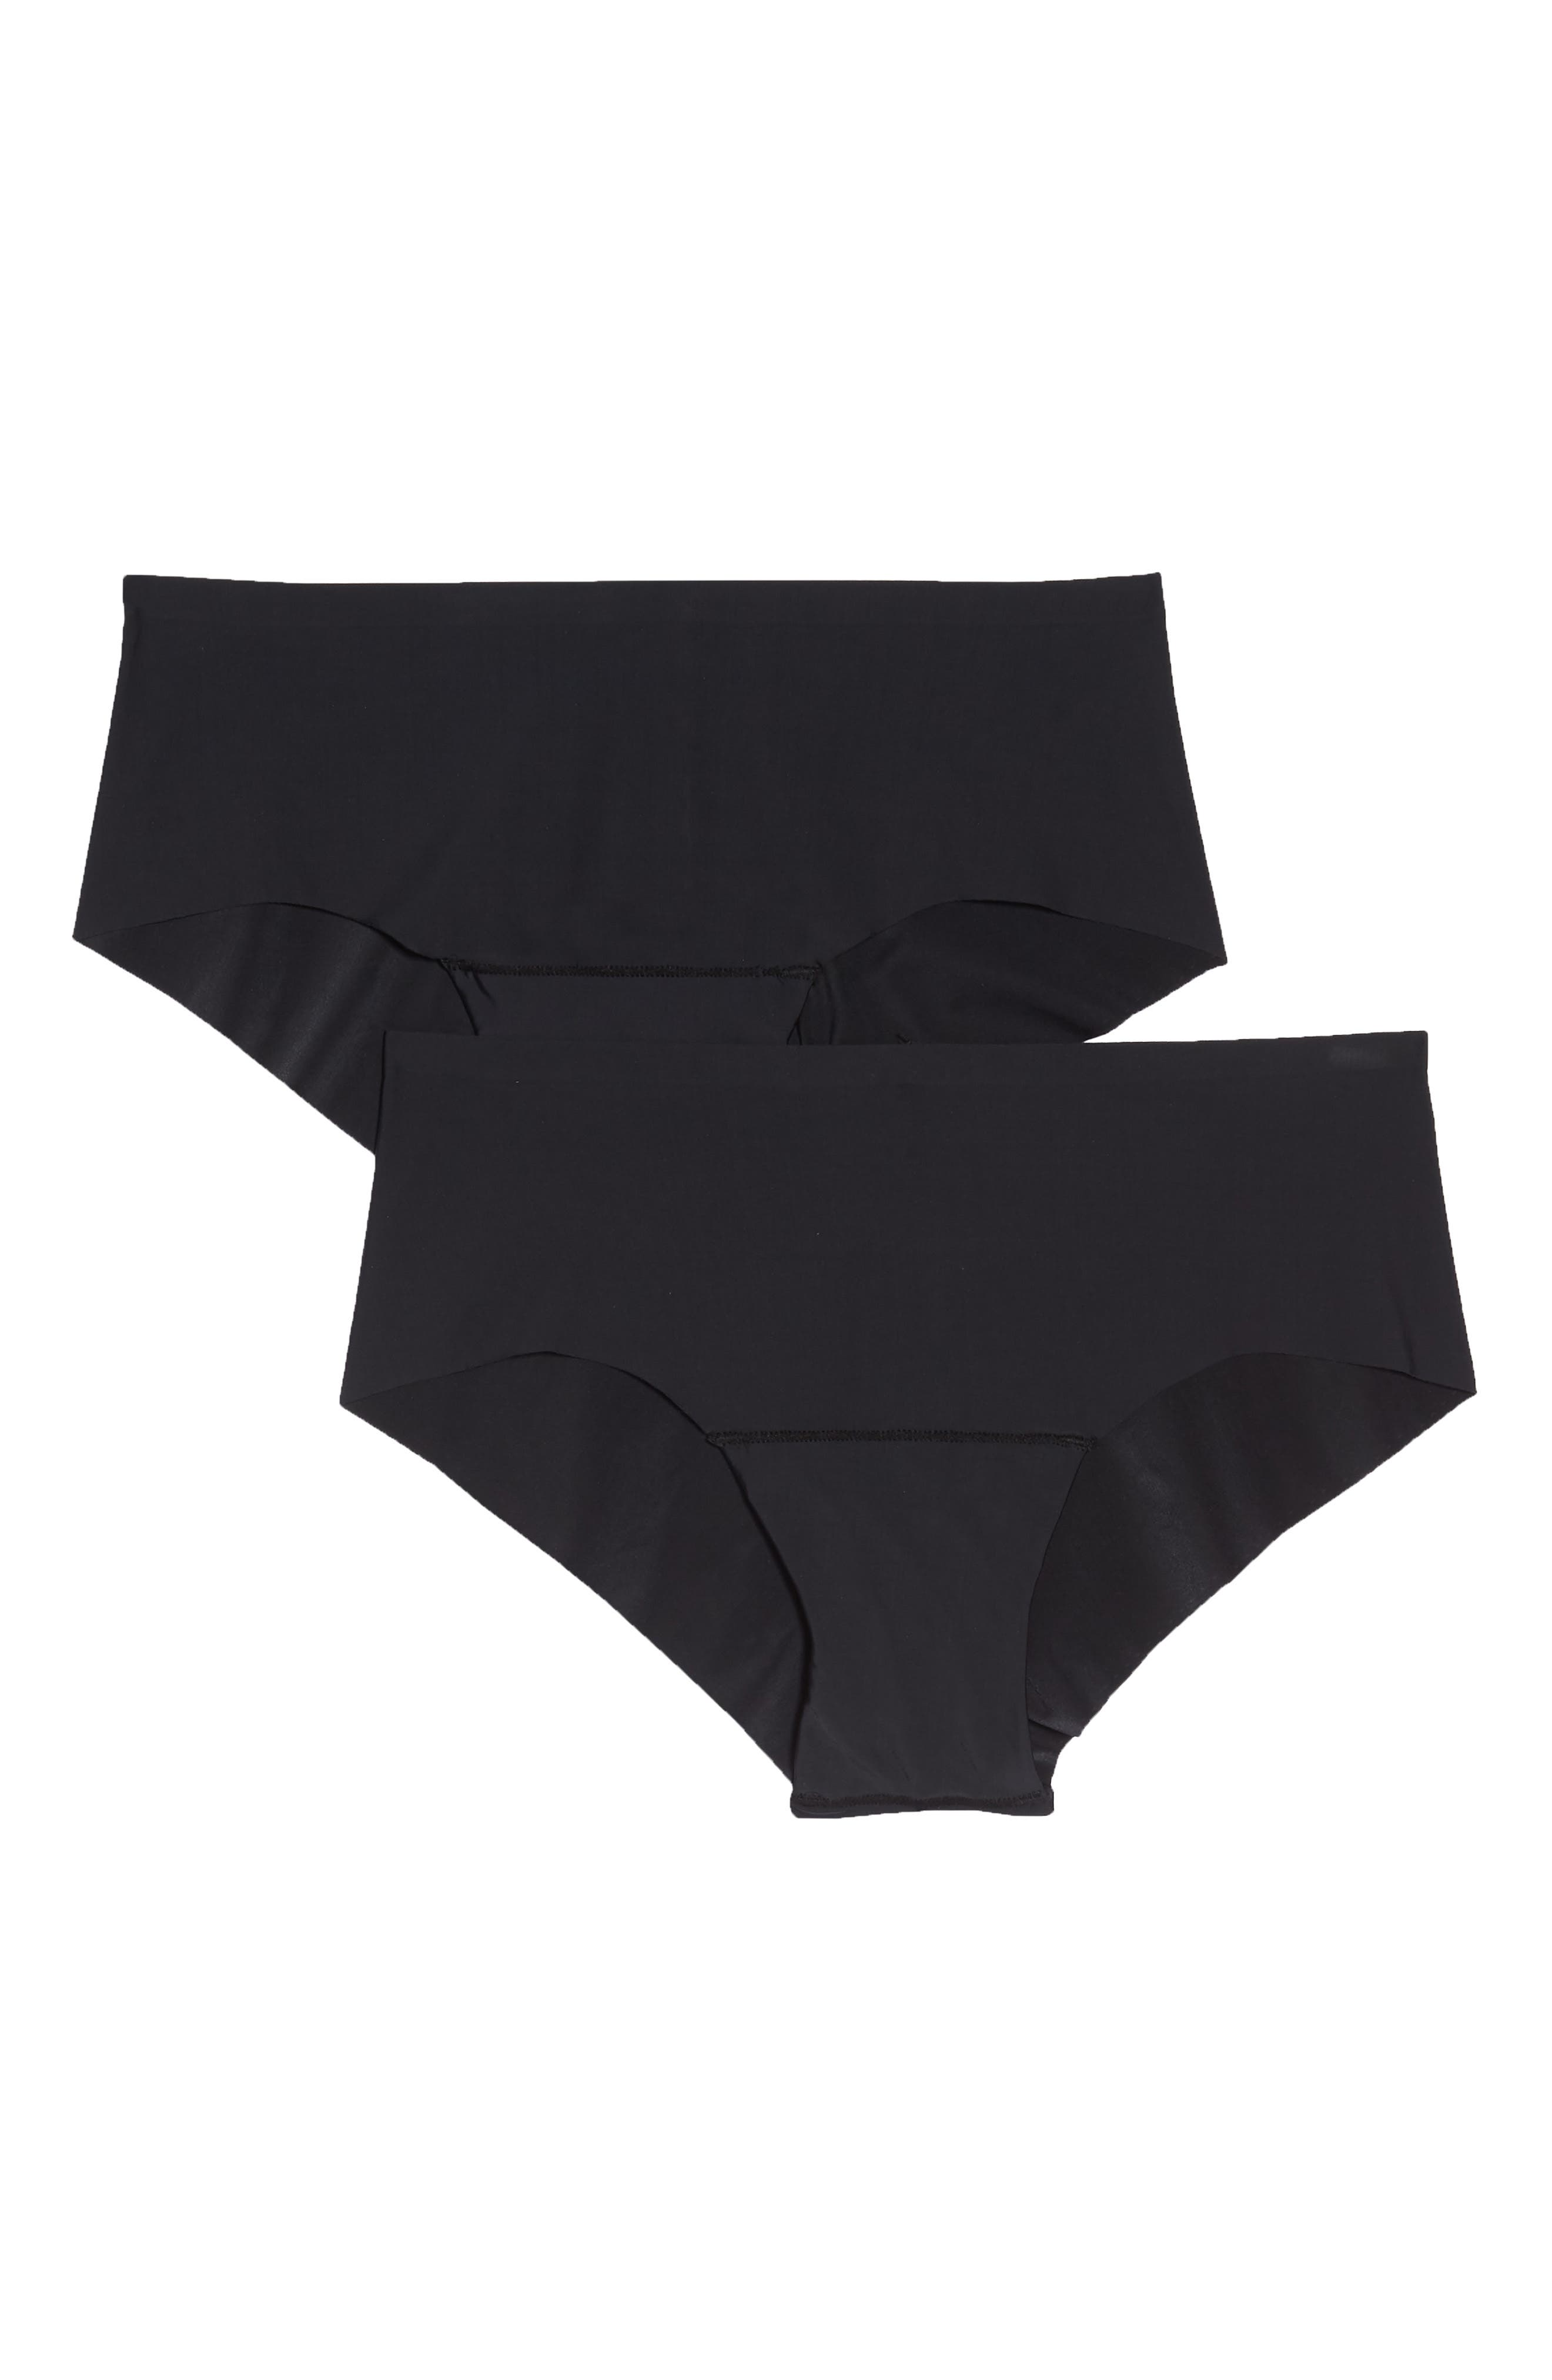 2-Pack Dream Invisibles Hipster Panties,                         Main,                         color, 001